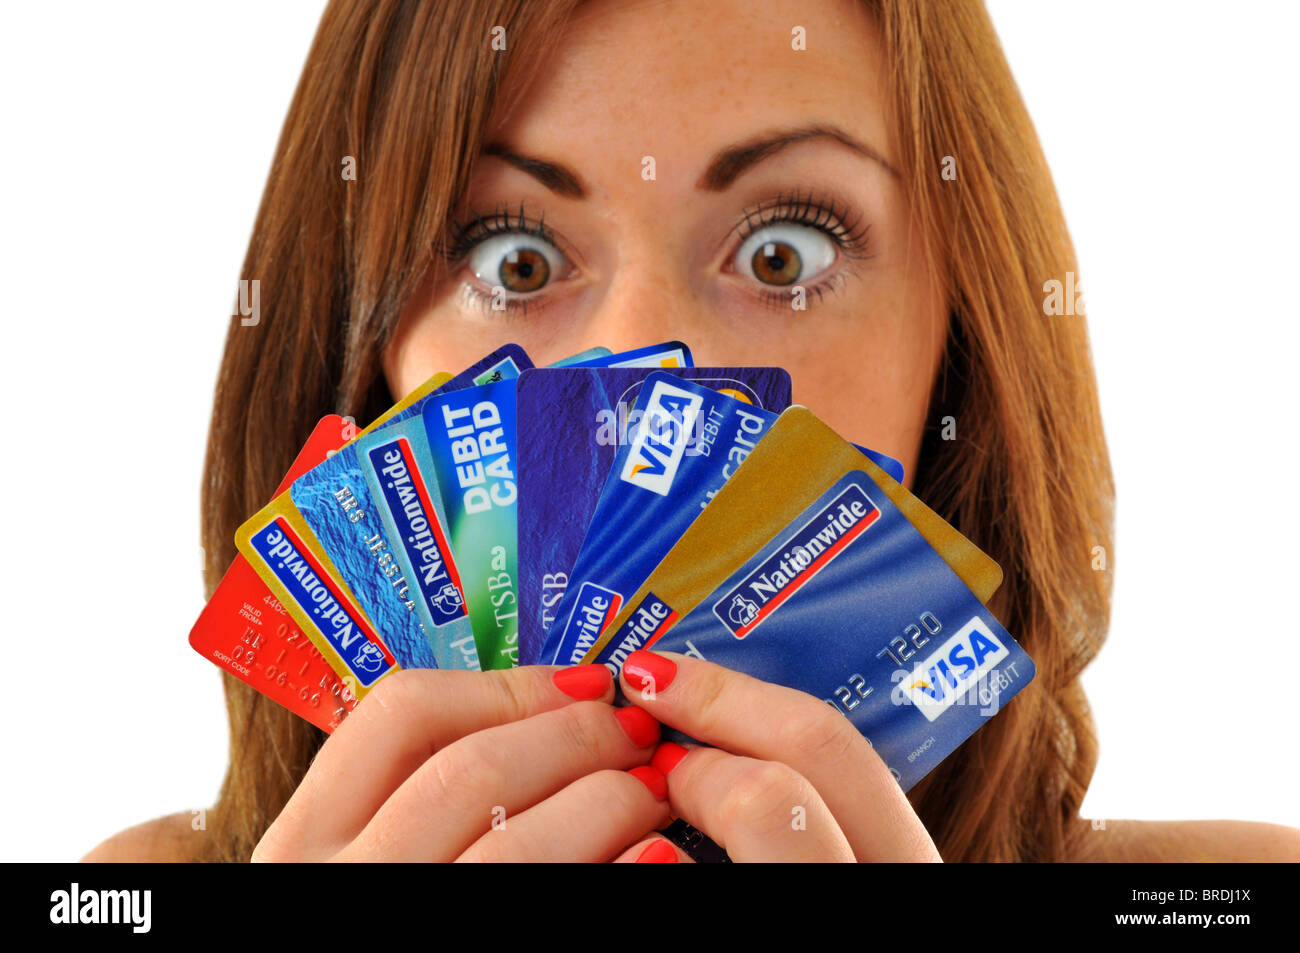 Credit cards, woman holding lots of credit and debit cards - Stock Image